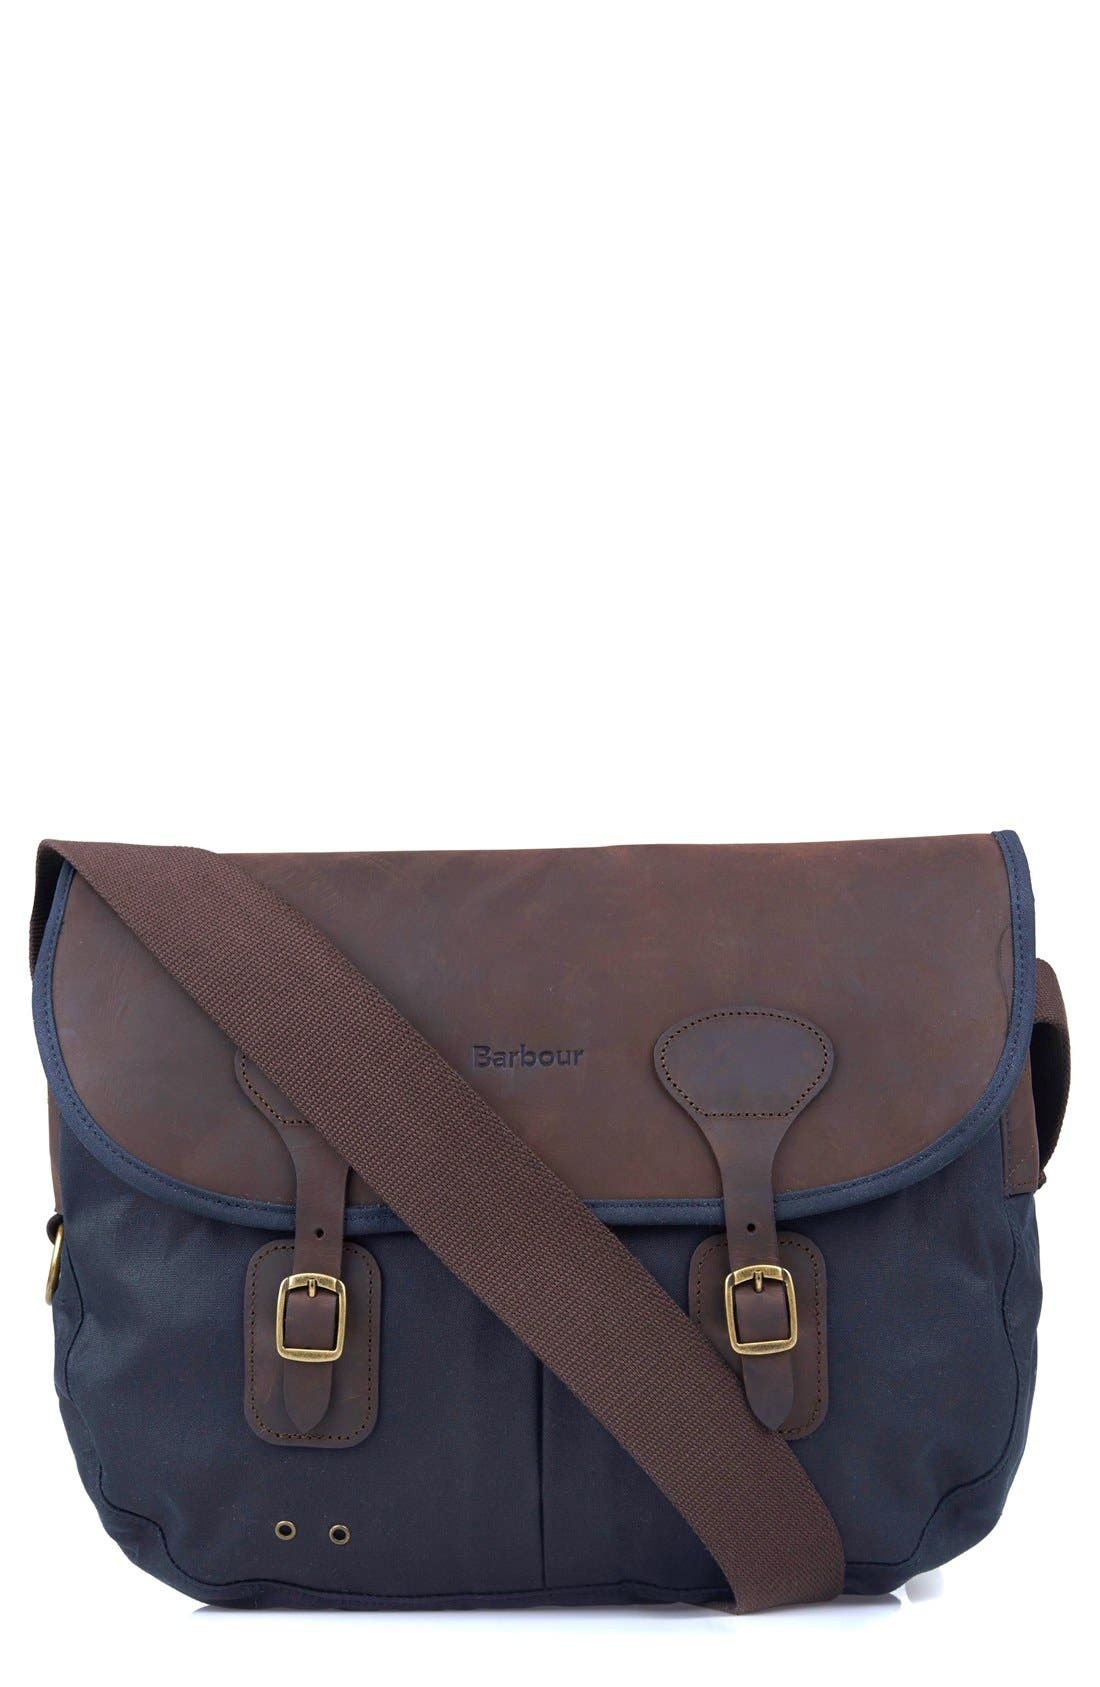 Waxed Canvas Tarras Bag,                             Main thumbnail 2, color,